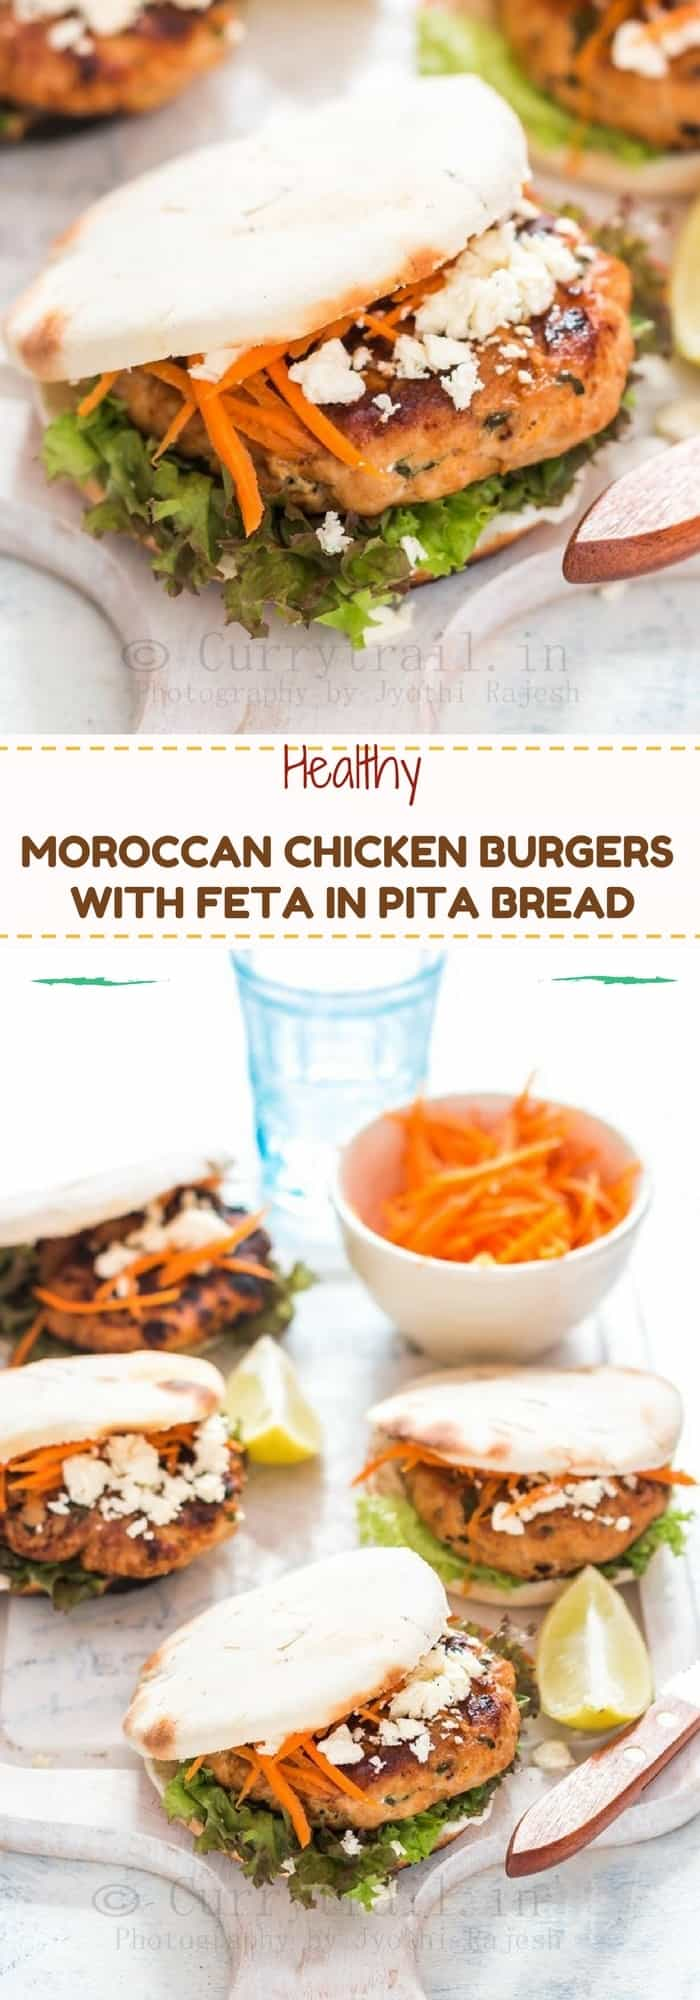 Moroccan Style Chicken Burgers with Feta Cheese and Carrot Slaw Pin